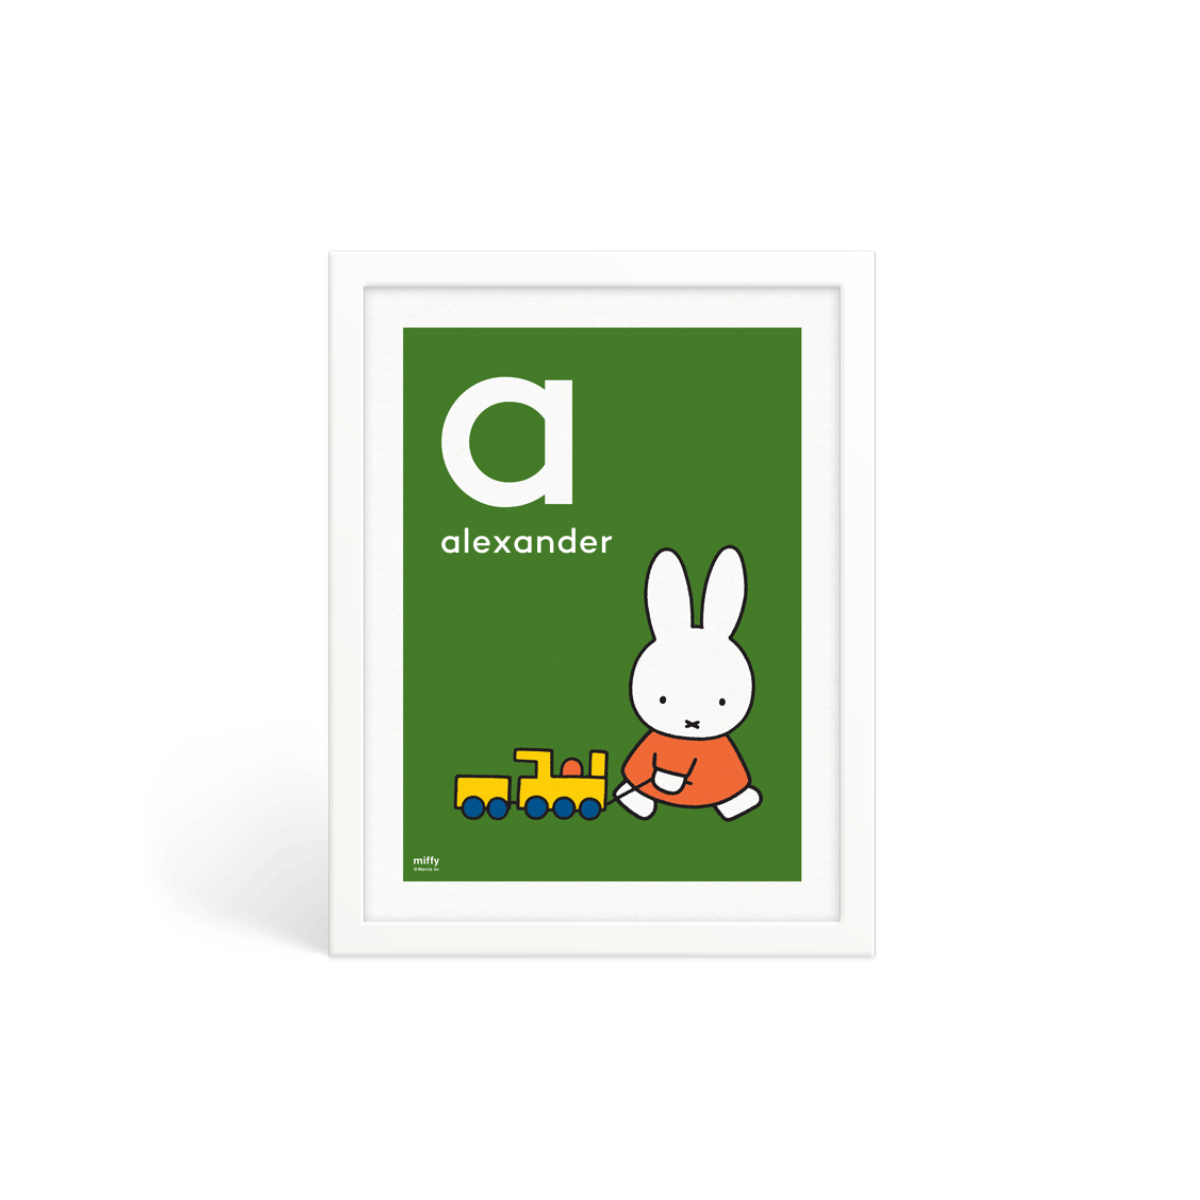 Https%3a%2f%2fwww.papier.com%2fproduct image%2f98187%2f73%2fmiffy 24891 front 1575453451.png?ixlib=rb 1.1